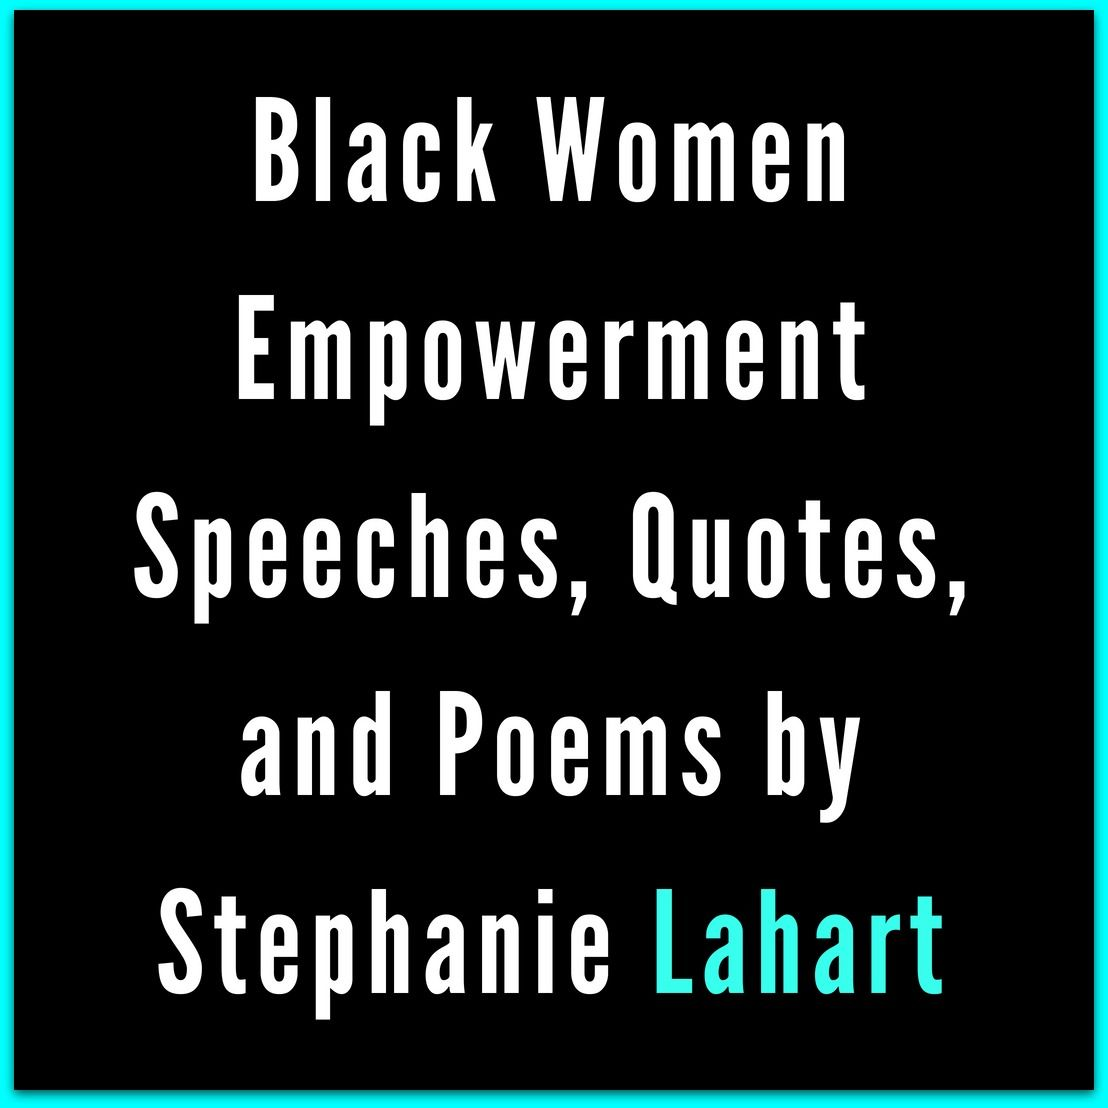 Stephanie Lahart Black And Educated Quotes Quotblack Intelligent